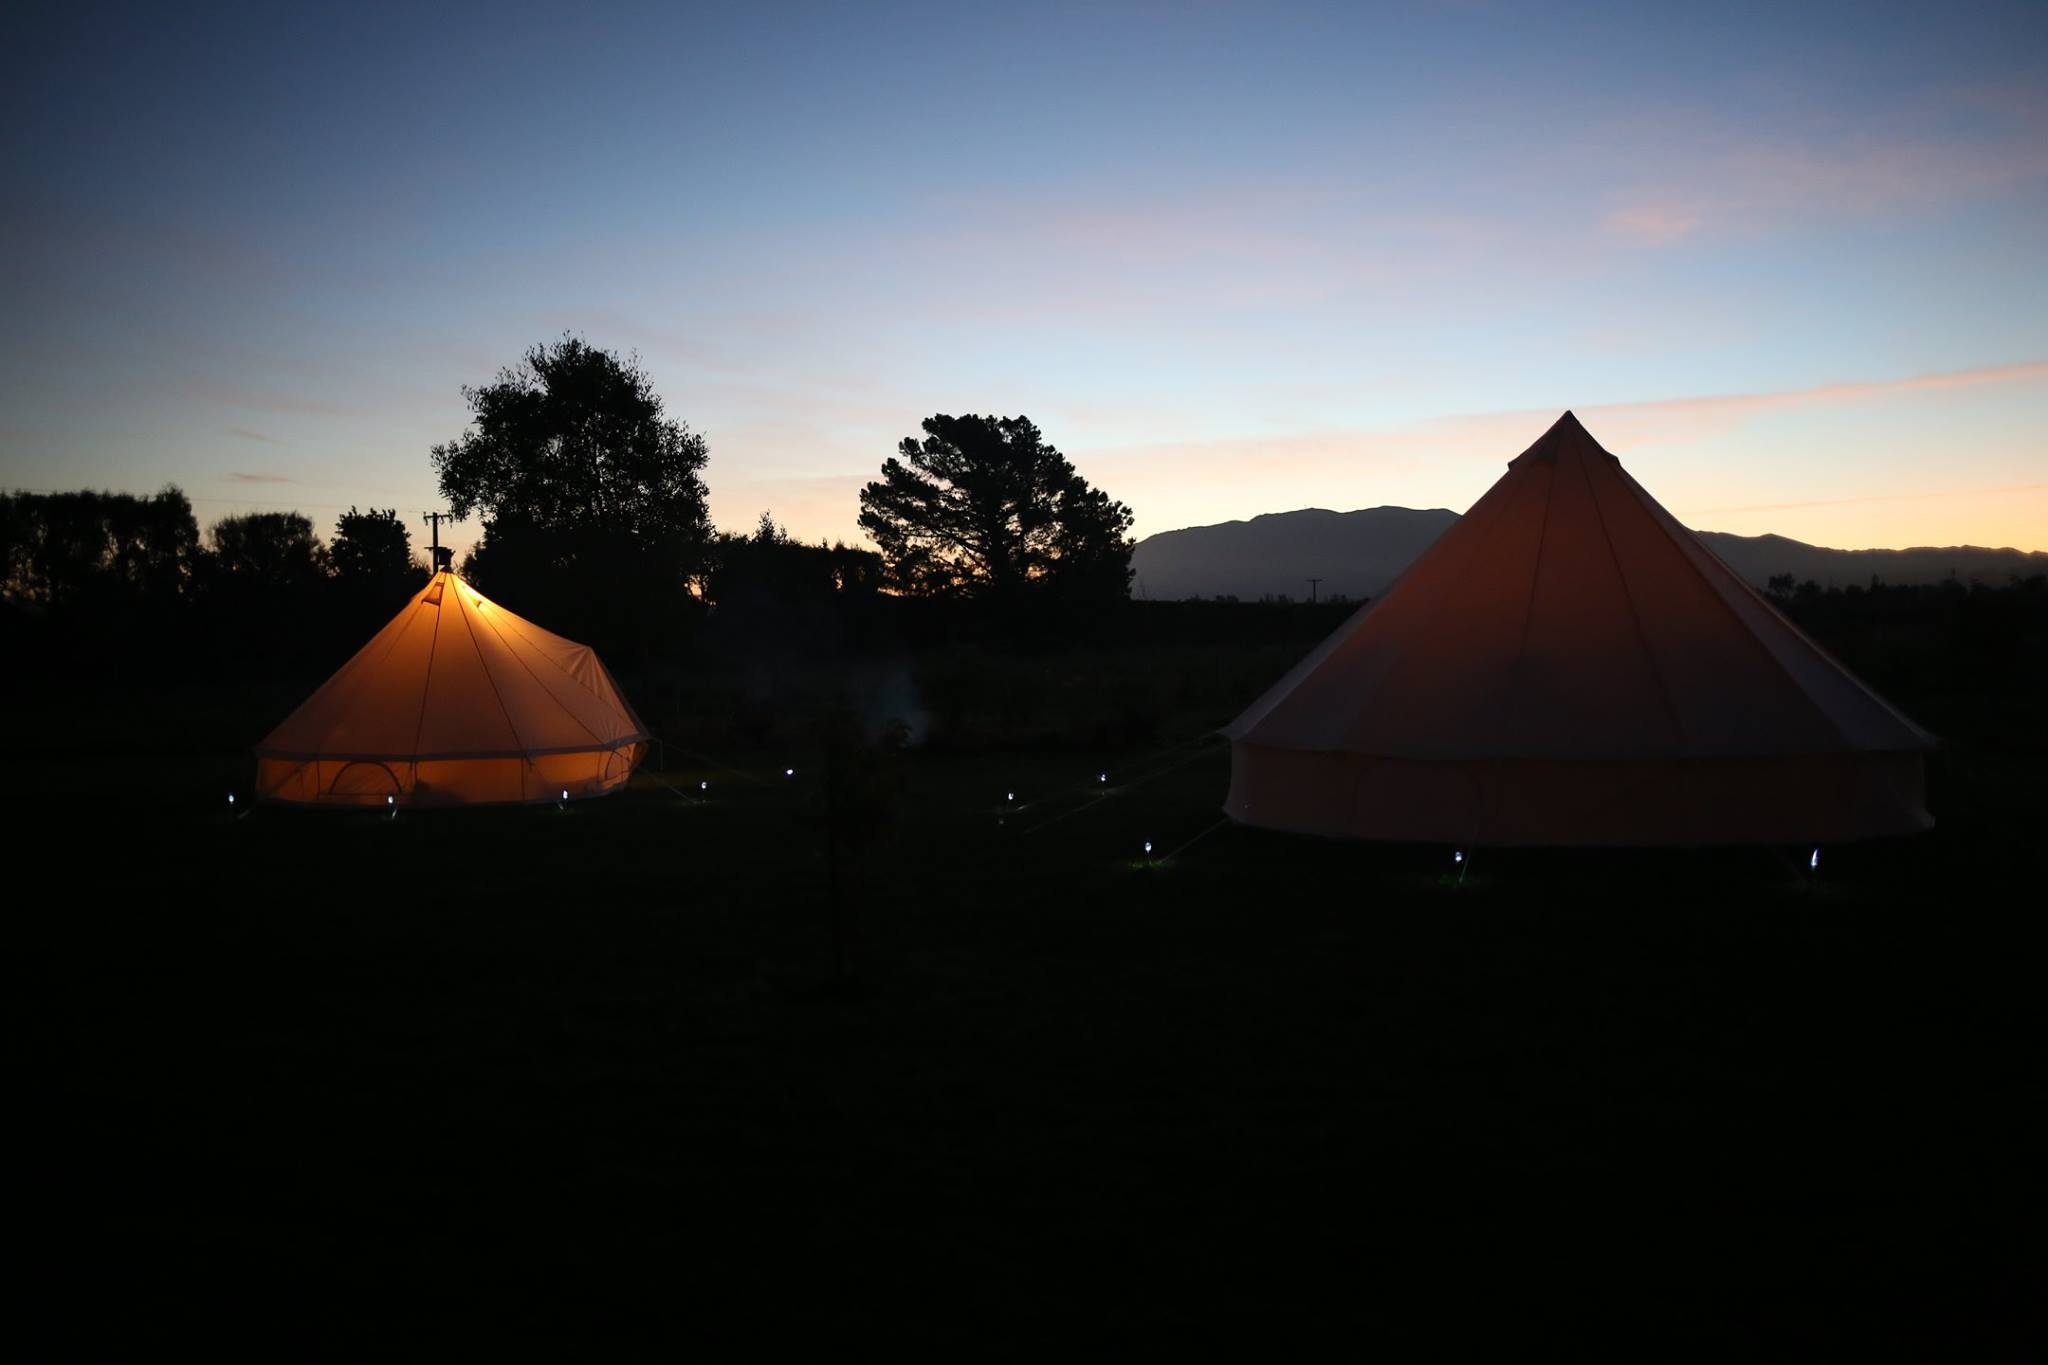 hiakaibelltents